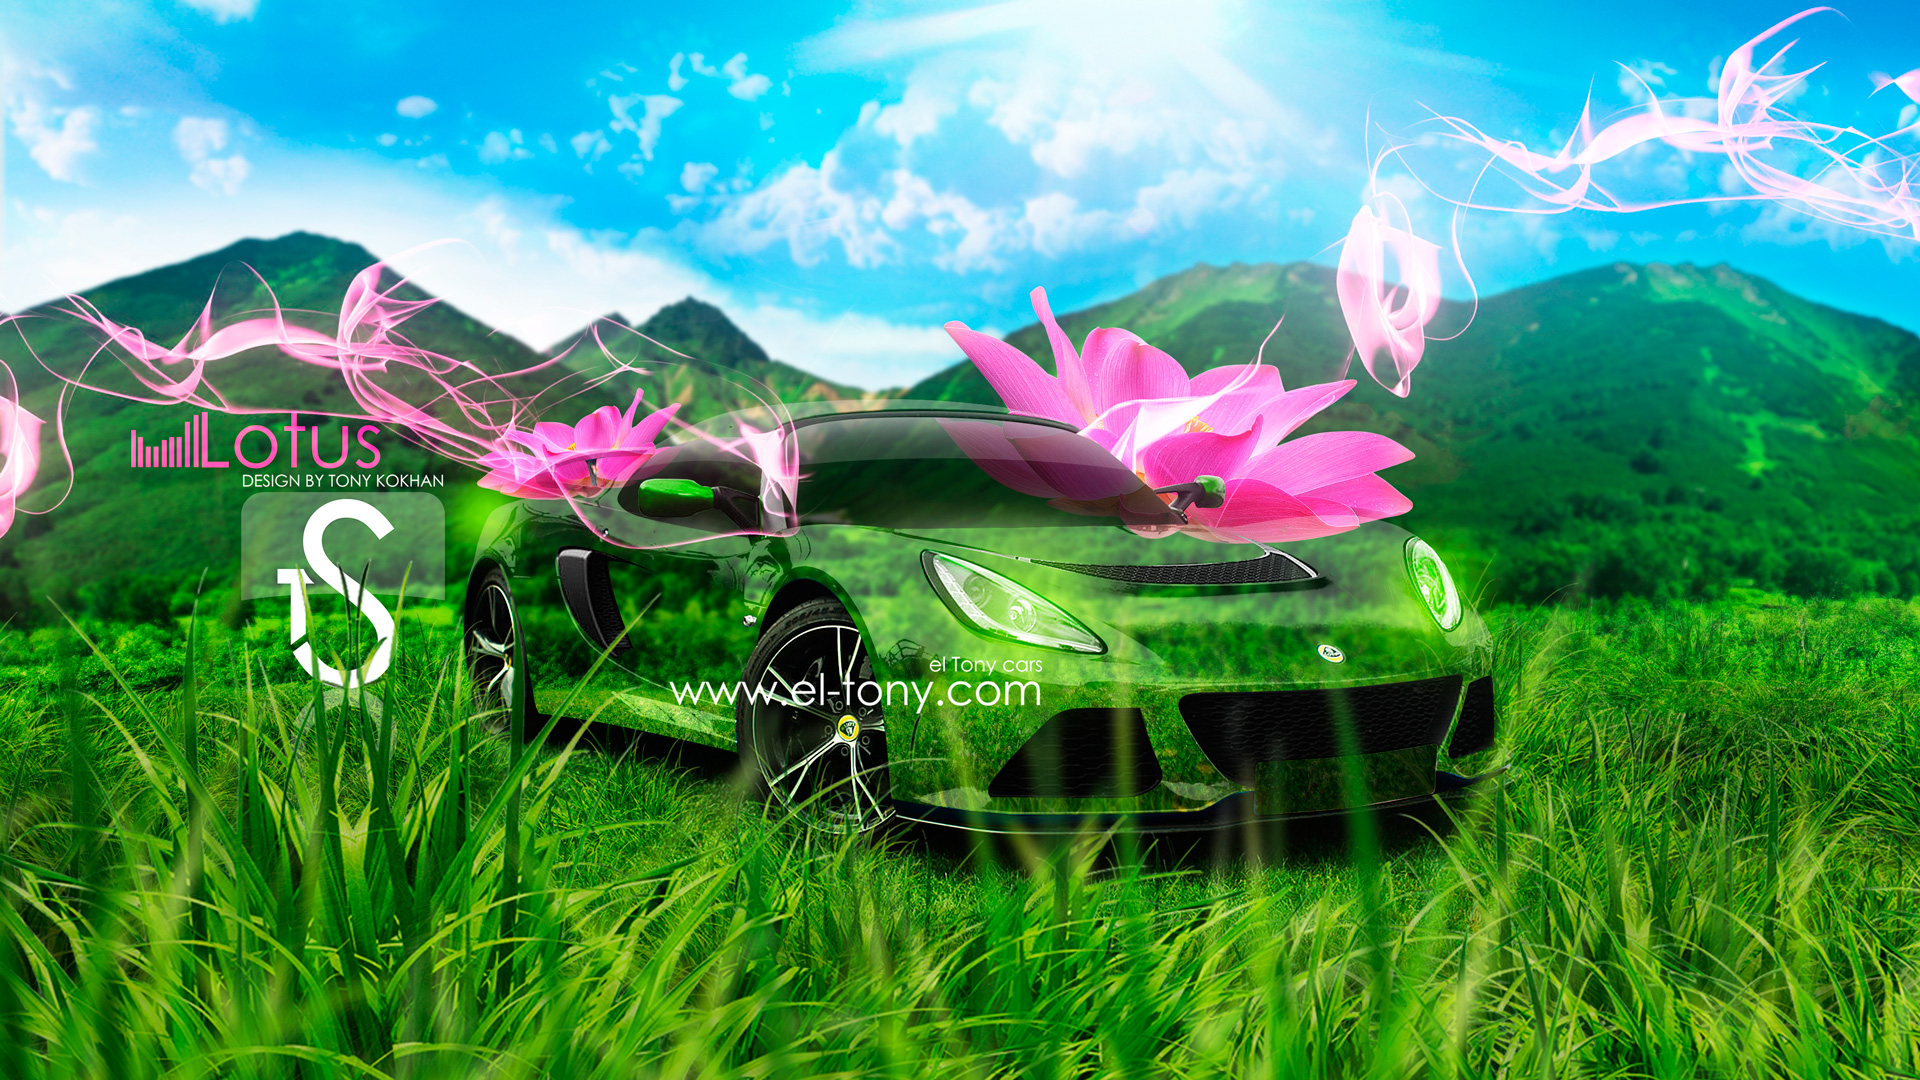 Amazing Lotus Exige Pink Flowers 2013 Crystal Nature Car